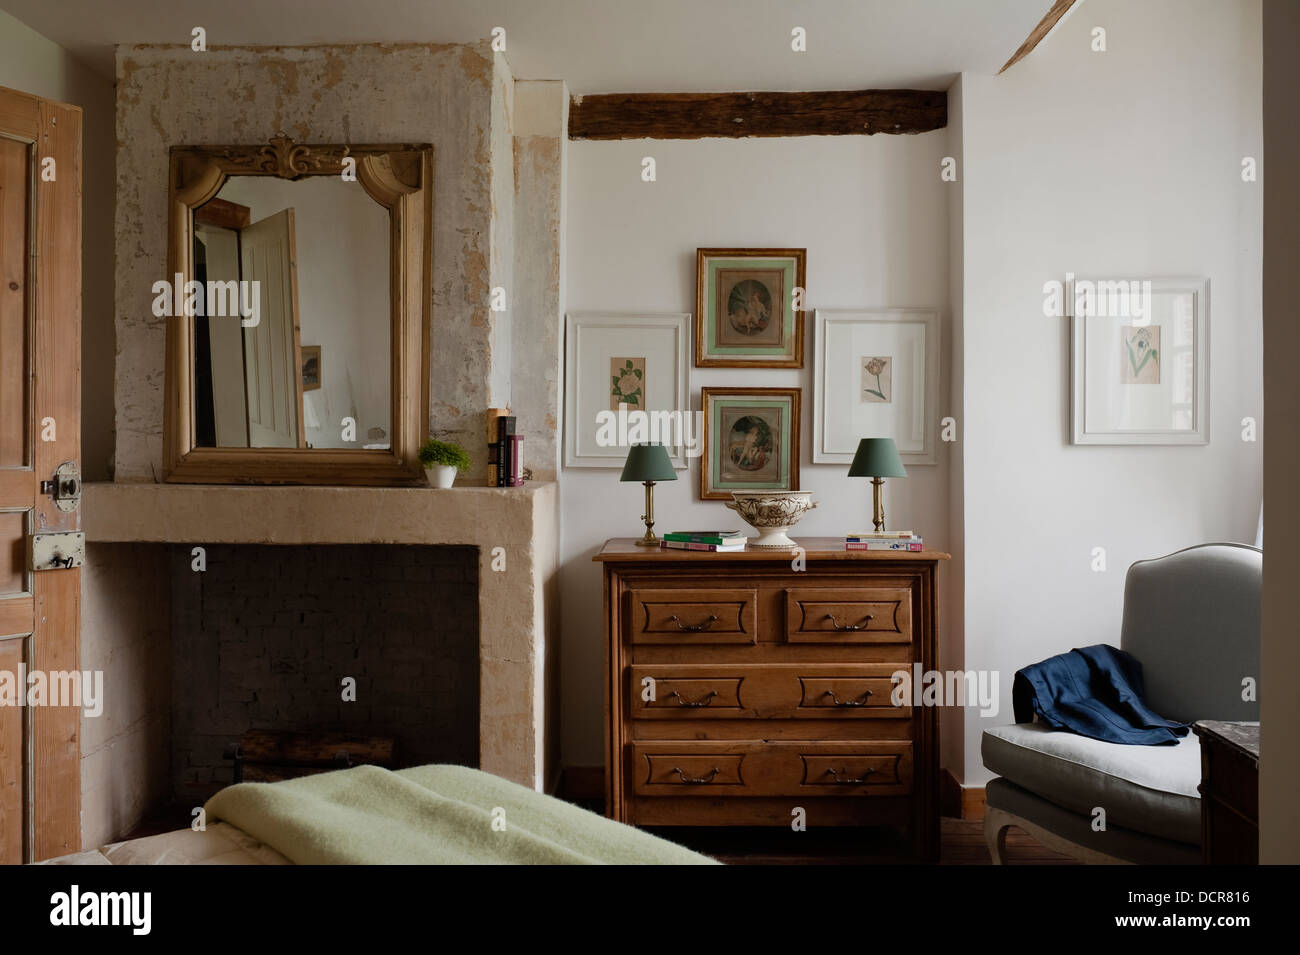 Open Stone Fireplace Open Stone Fireplace In Bedroom With Wooden Chest Of Drawers Stock